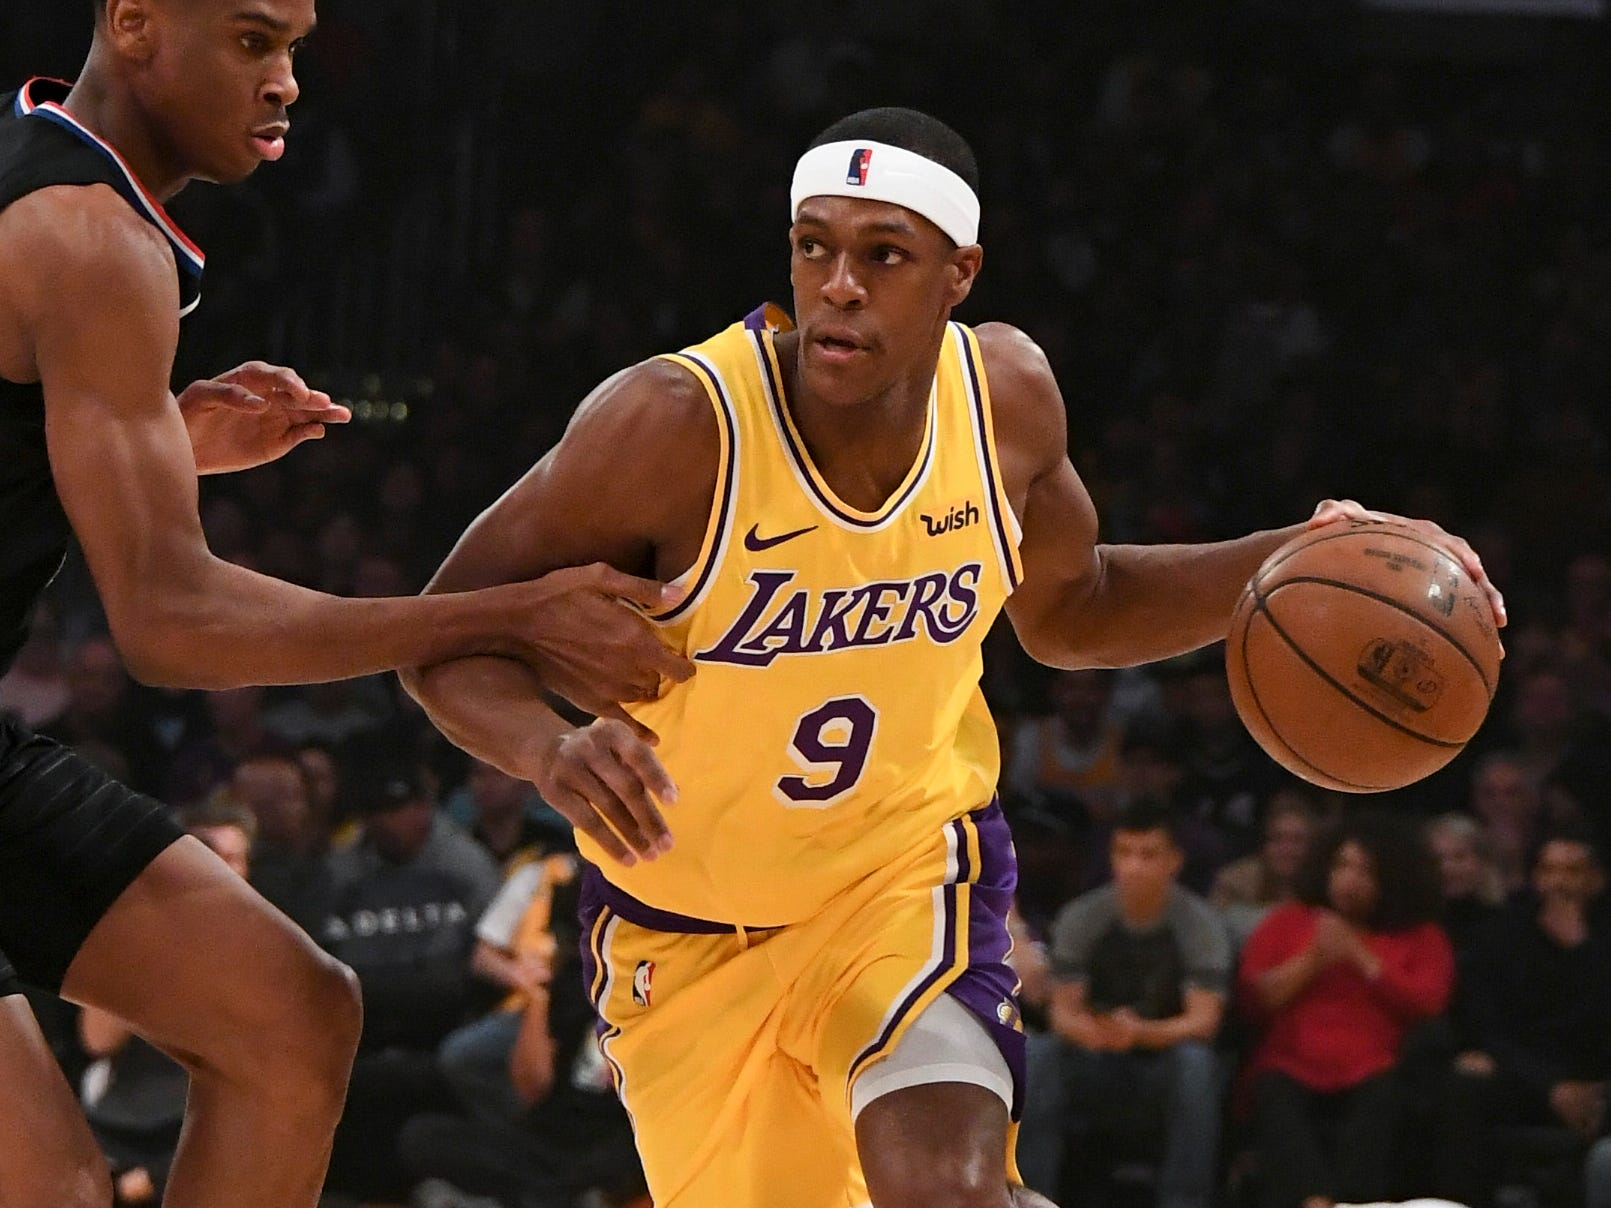 93. Rajon Rondo, Lakers (March 4): 24 points, 12 assists, 10 rebounds in 113-105 loss to Clippers.